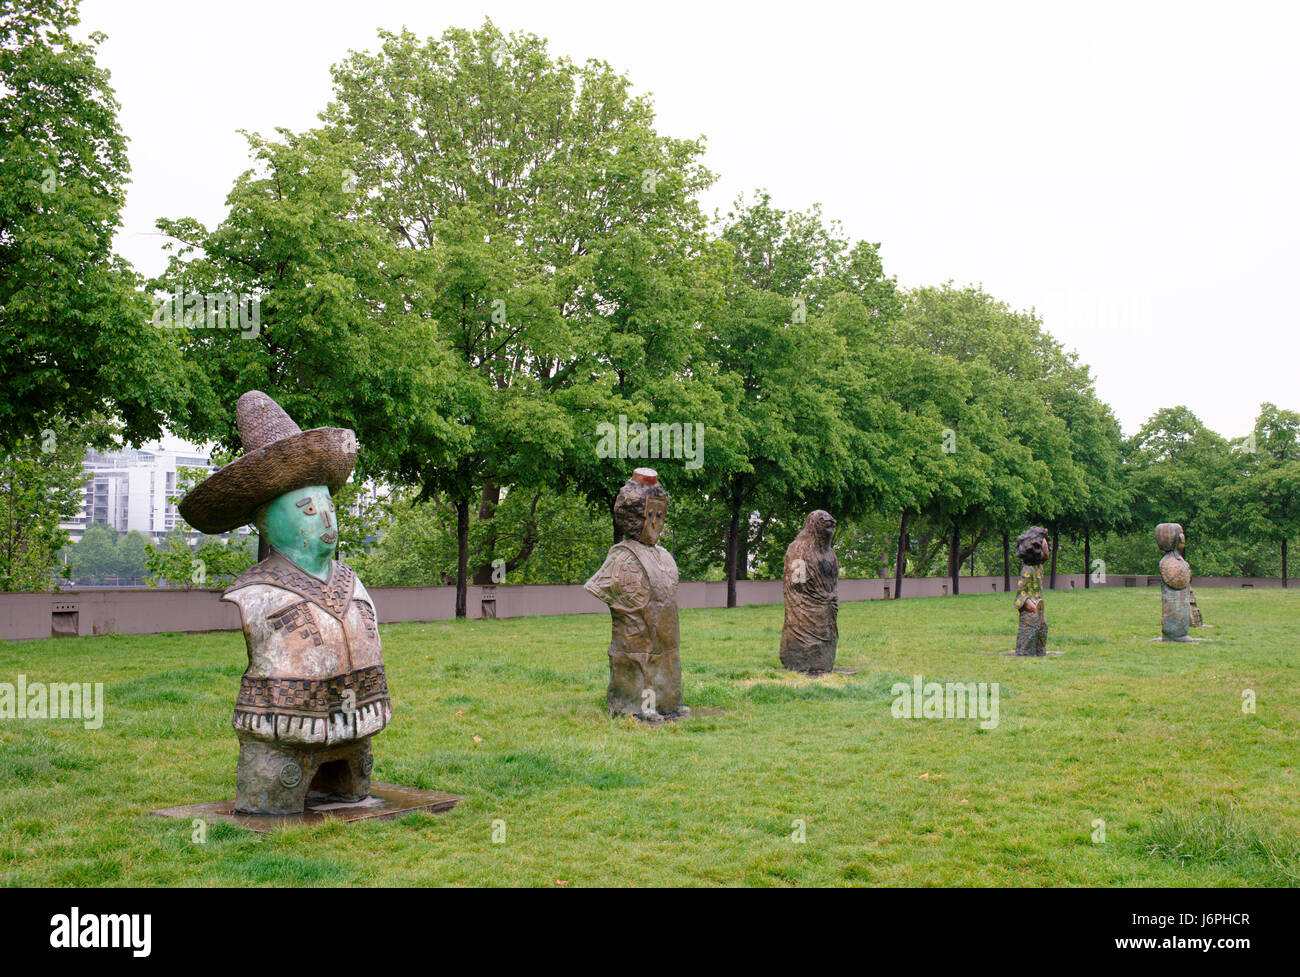 Paris,France- May 06,2017: Exhibition of sculptures in the park of Bercy Stock Photo